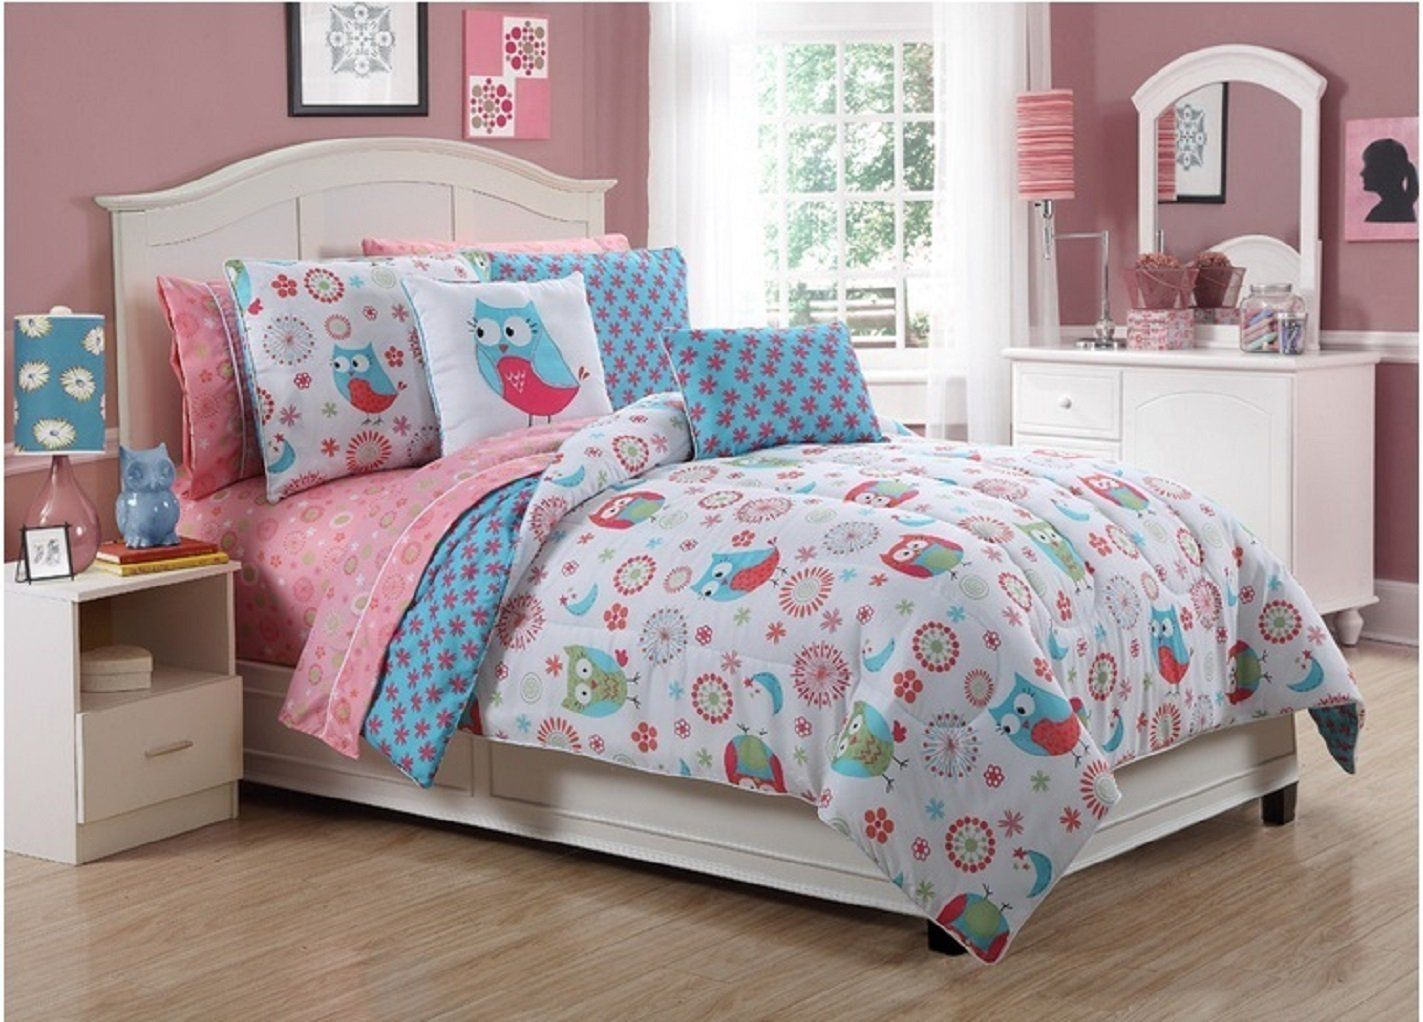 Amazon Com Vibrant Flowers And Owls Bed In A Bag